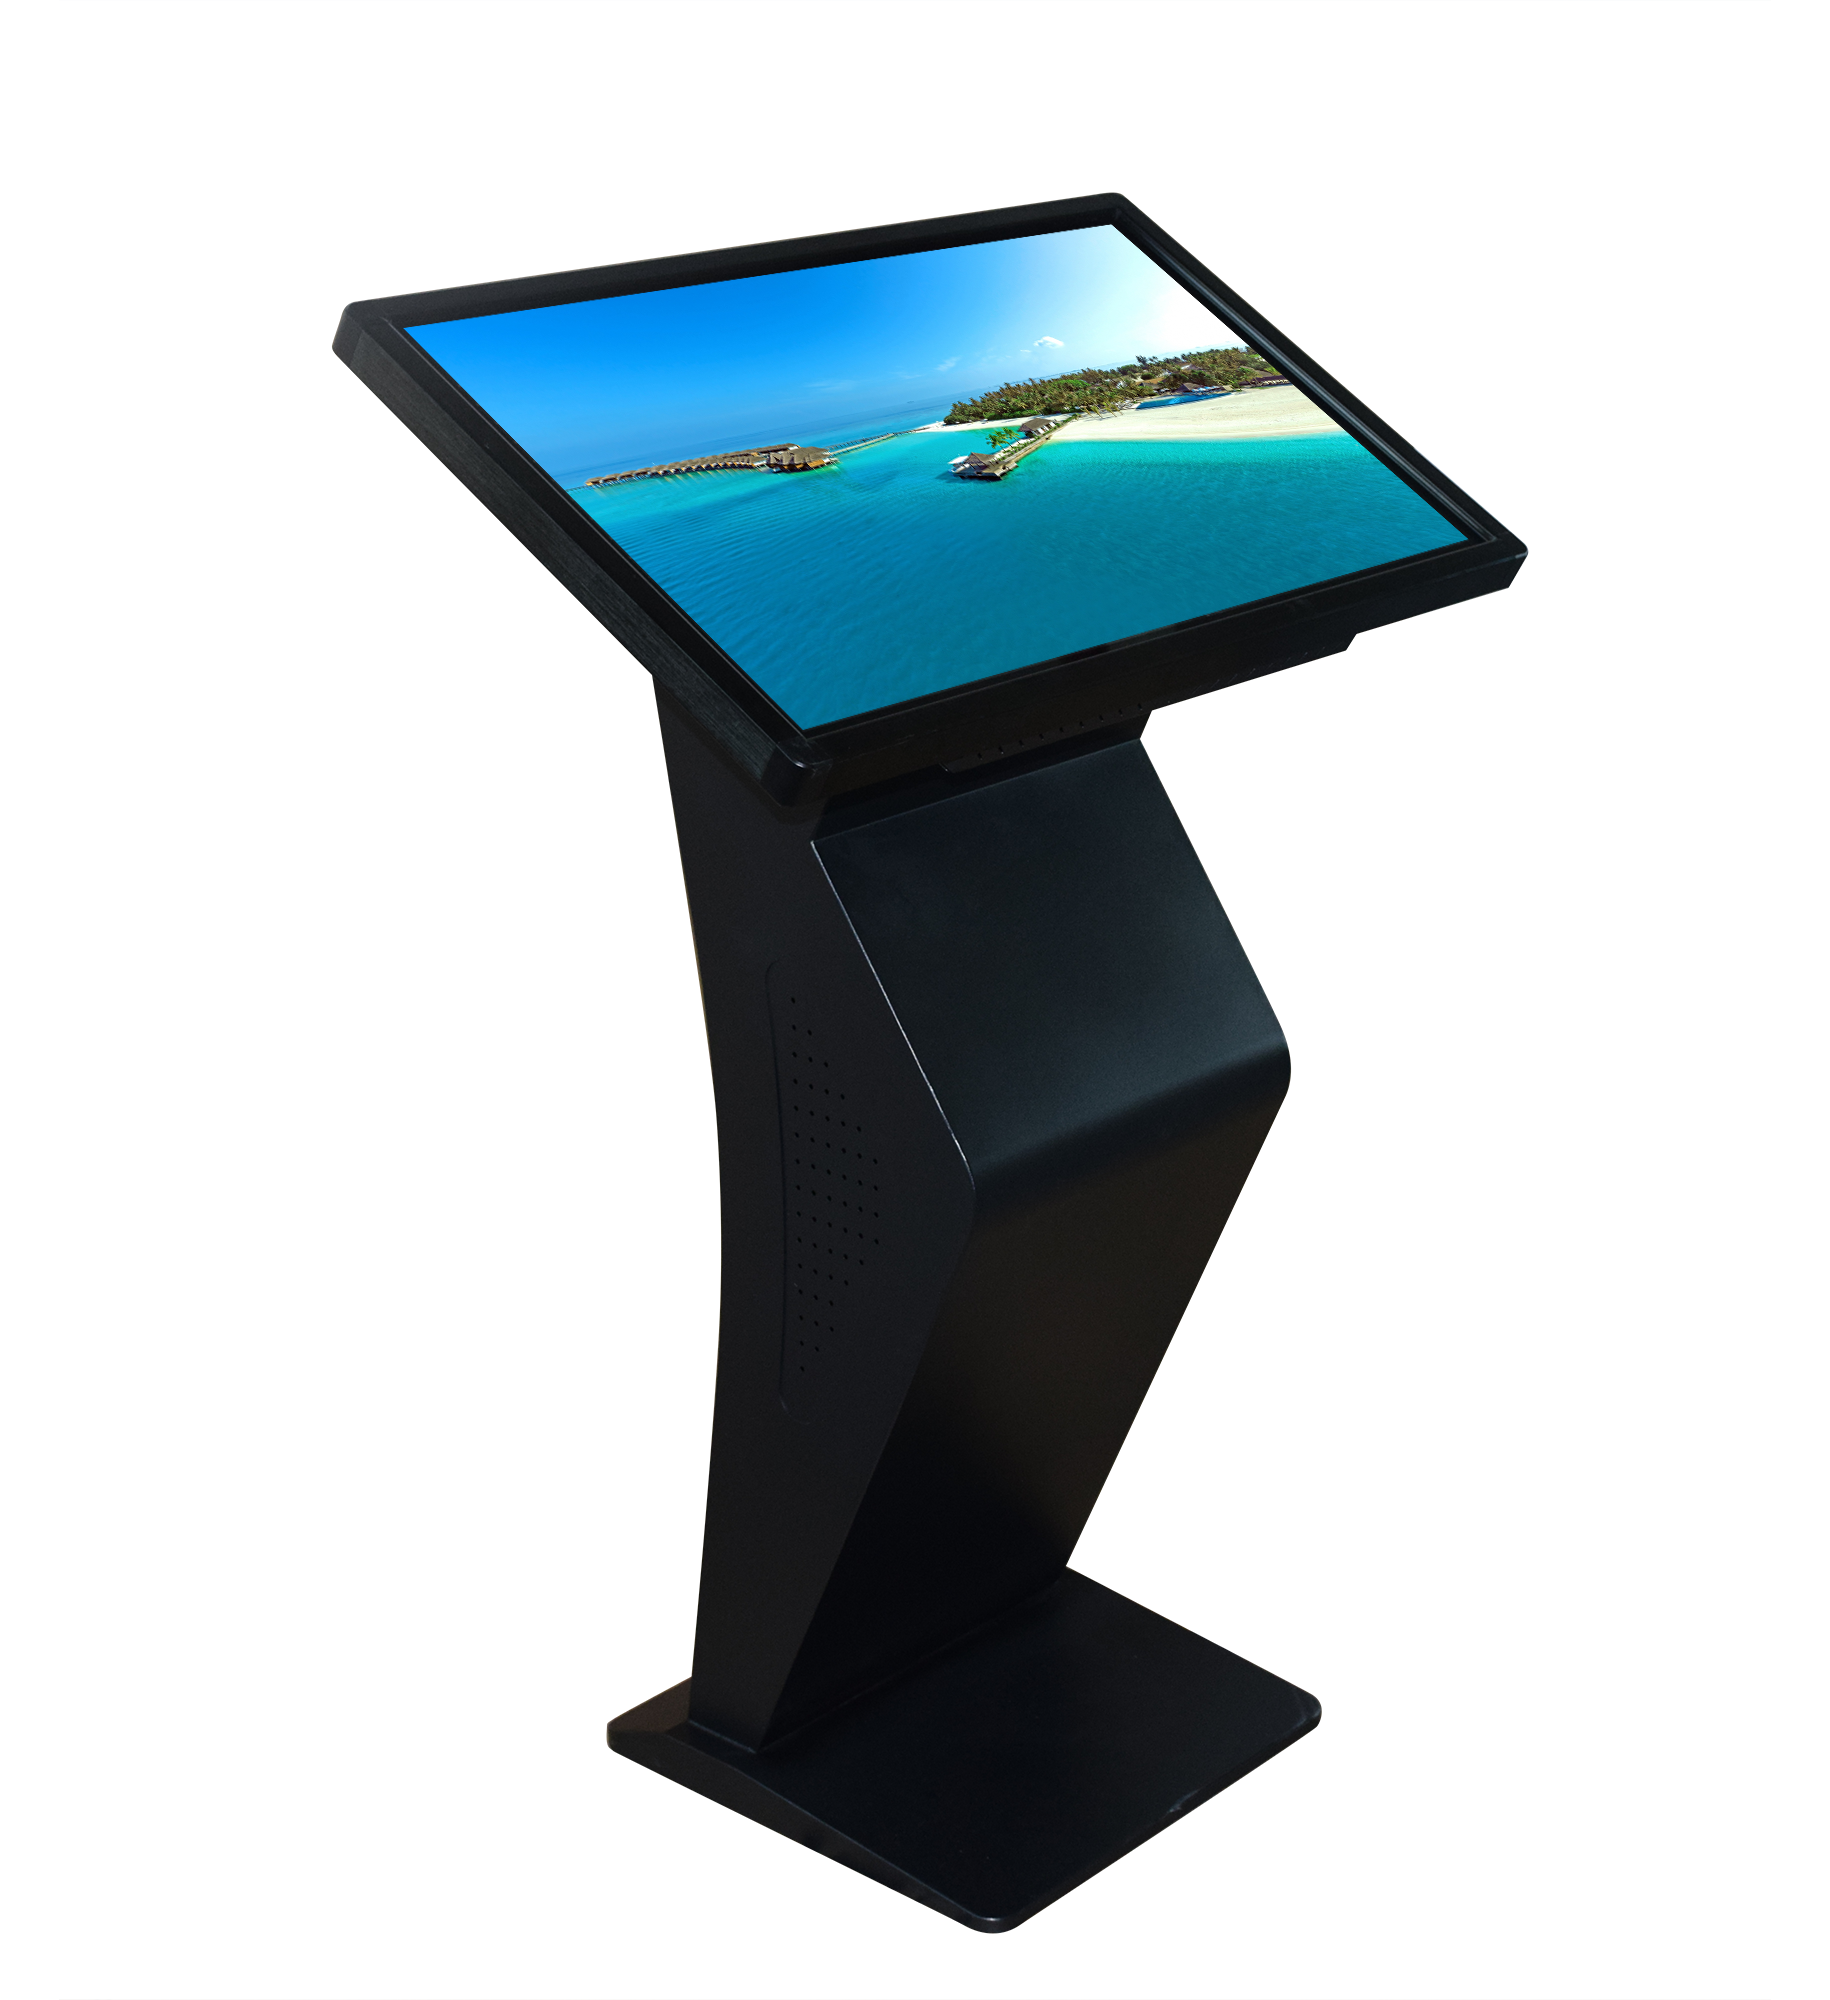 High Quality Outdoor Touch Screen Kiosk - VESA mounting system interactive digital display touchscreen tablet customize external hardware such as printer, barcode – Nusilkoad